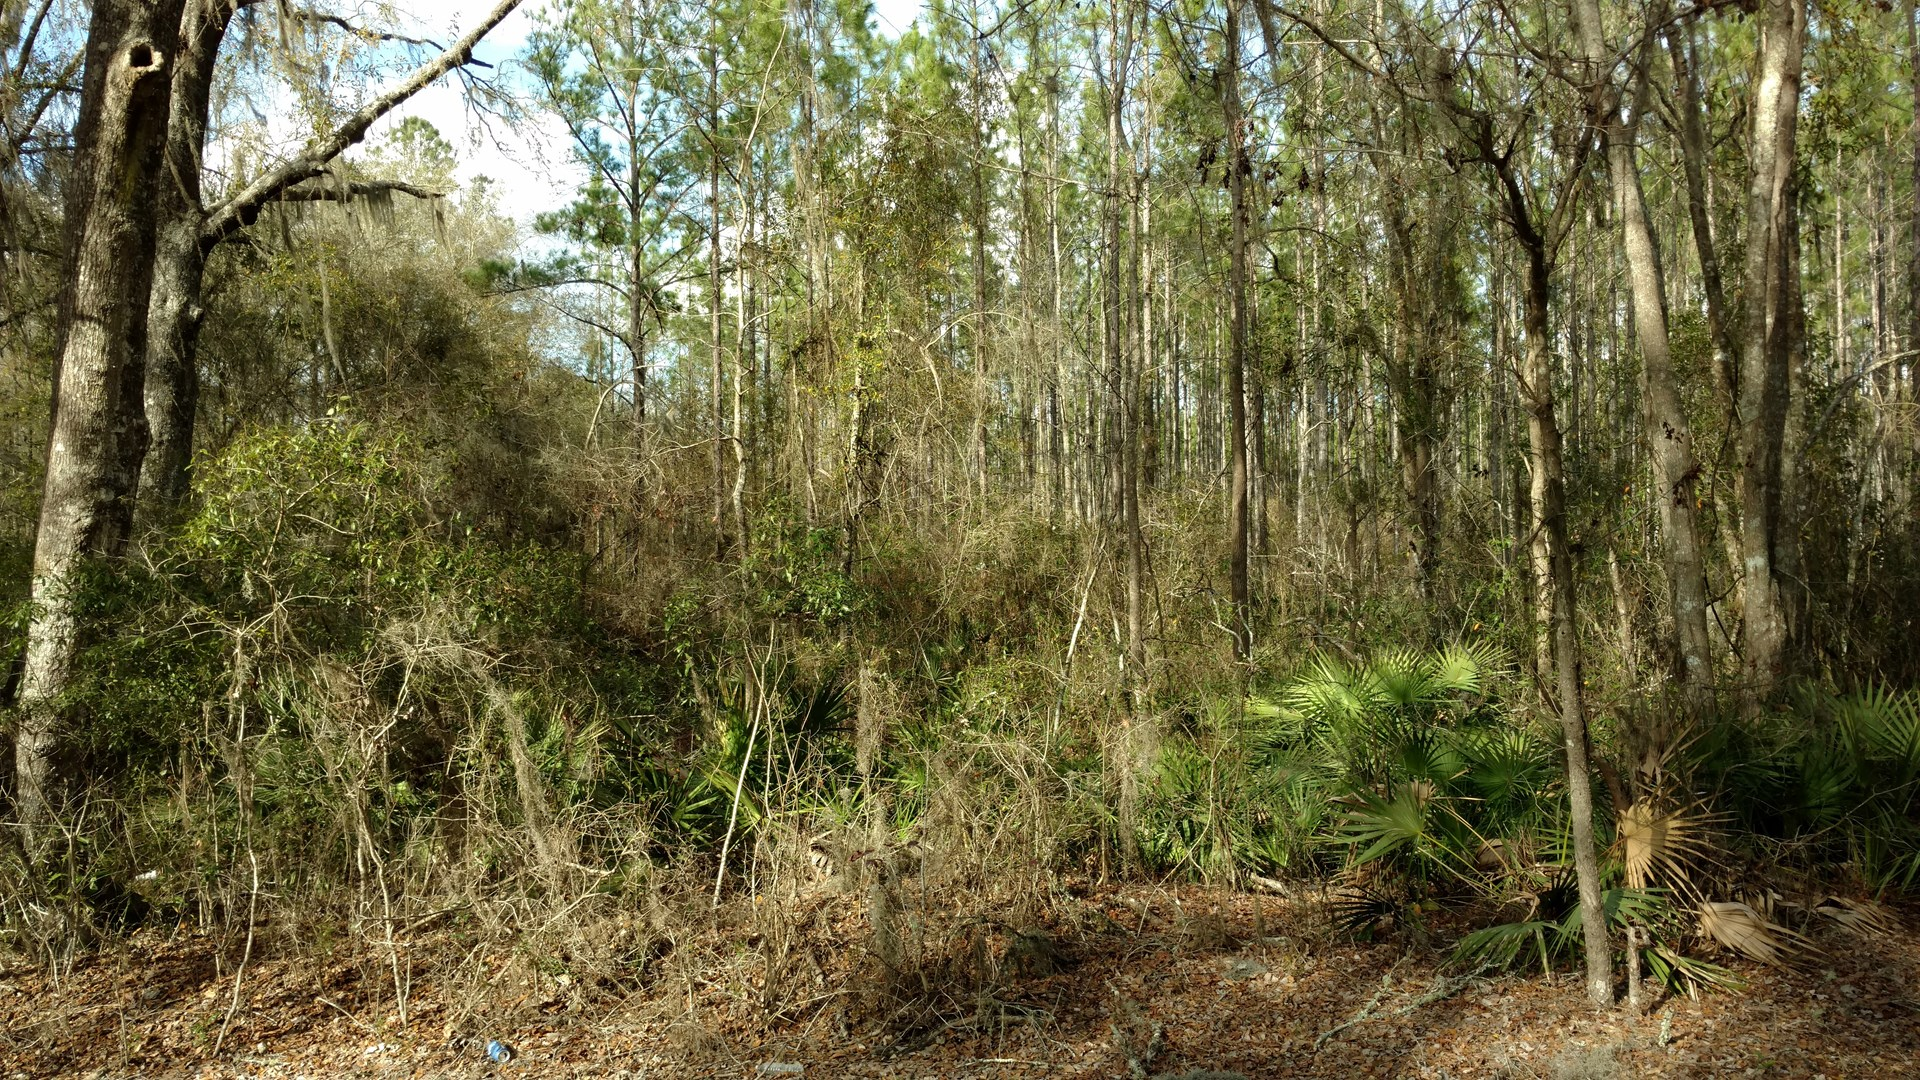 15 ACRES FOR SALE NORTH CENTRAL FLORIDA